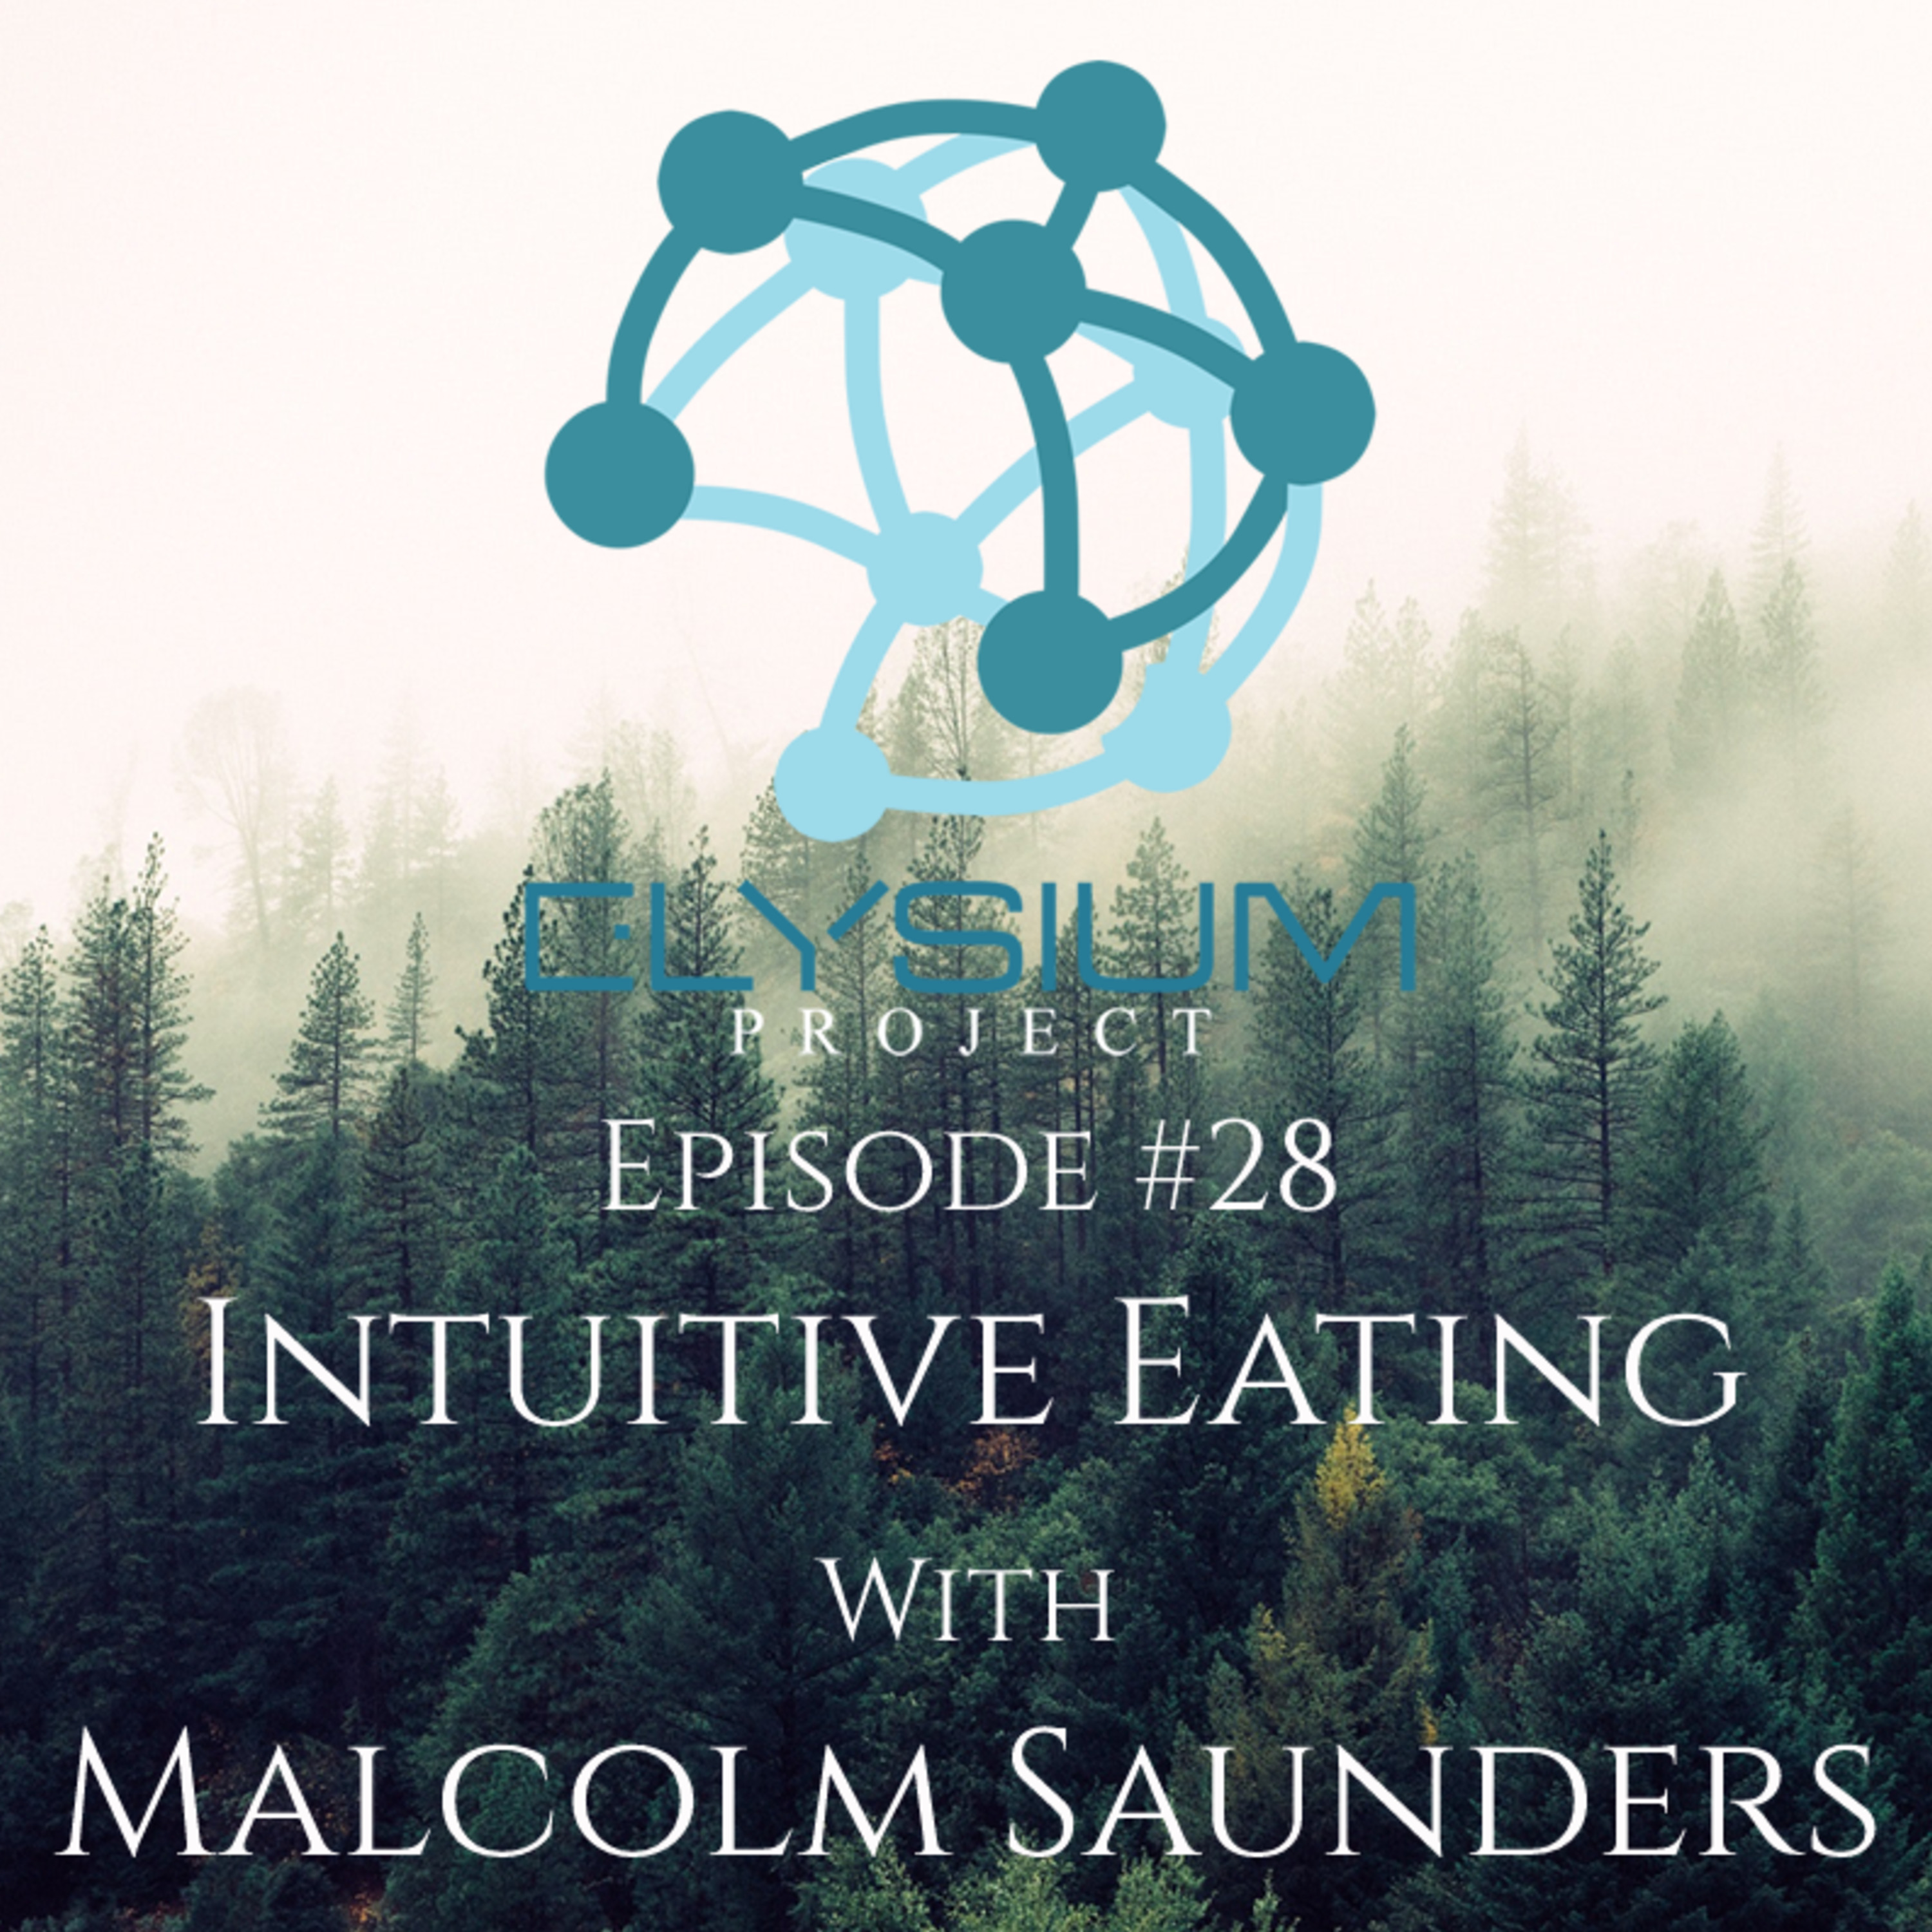 Episode 28: Intuitive Eating with Malcolm Saunders